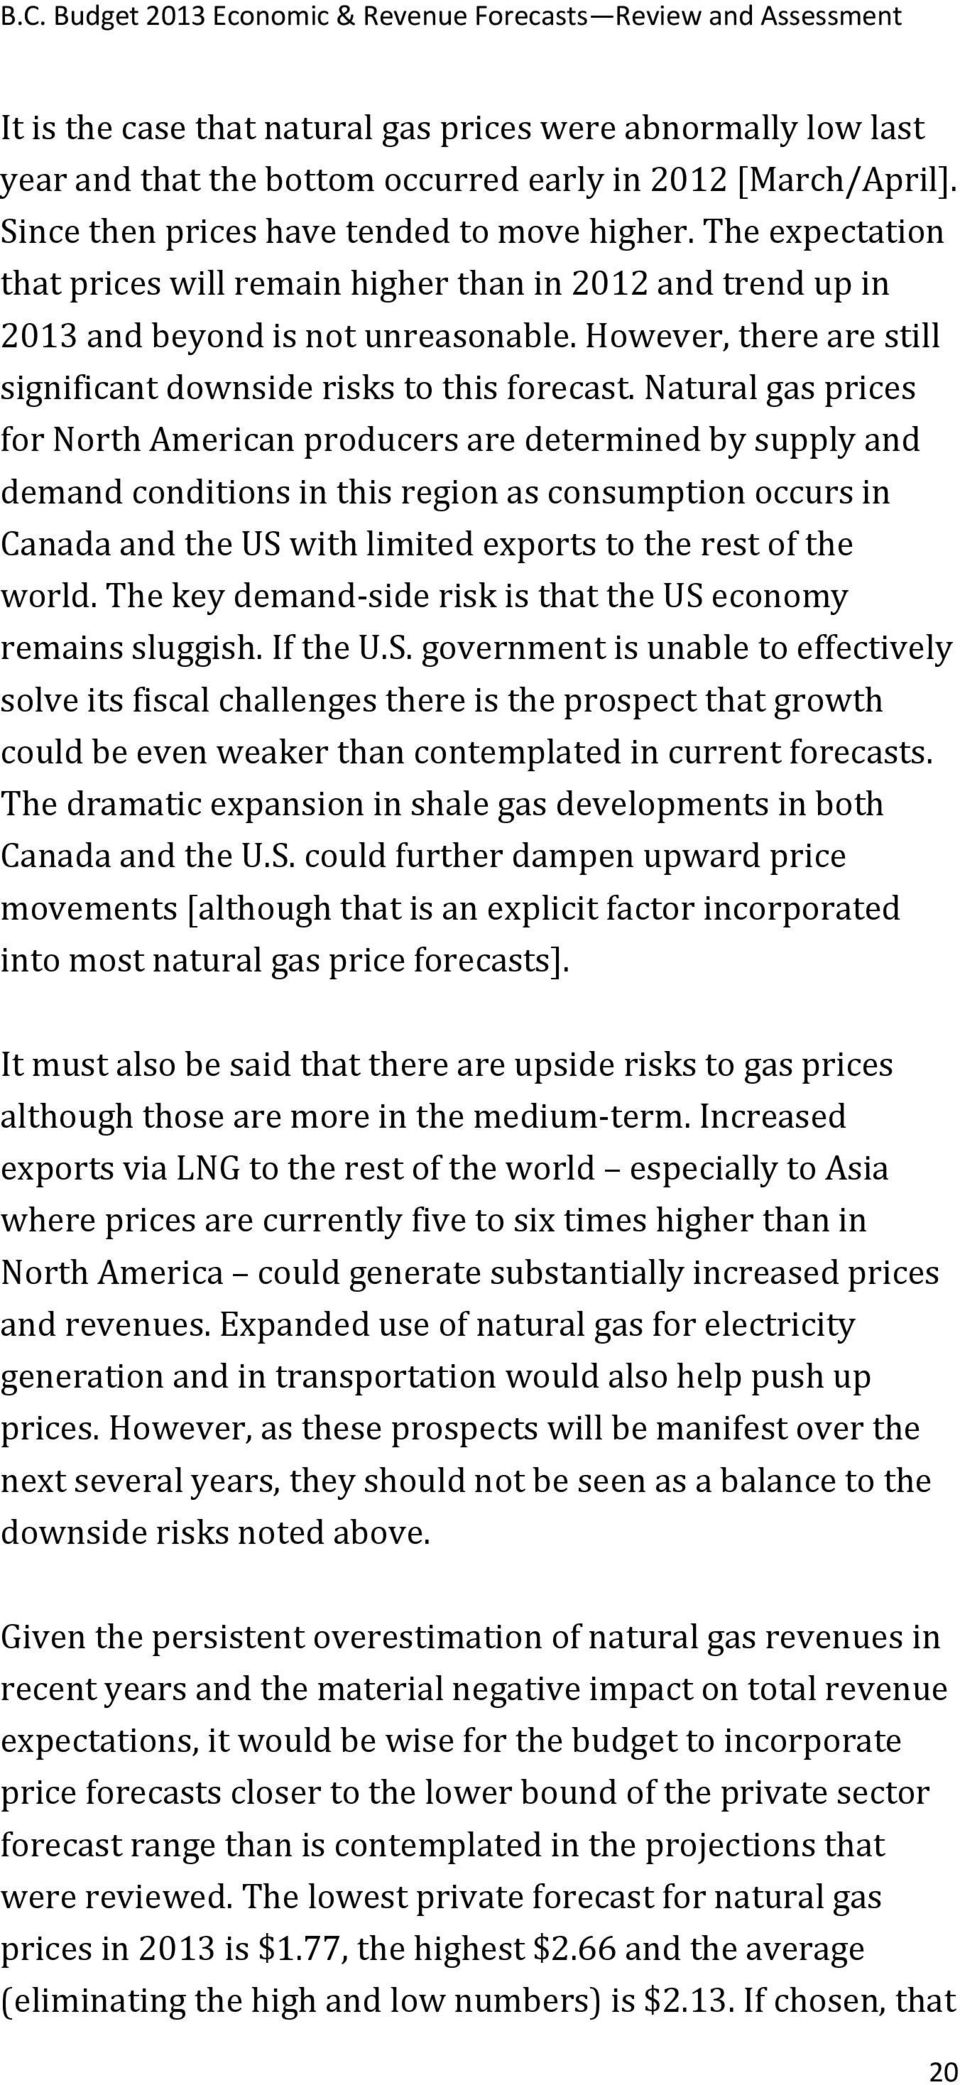 Natural gas prices for North American producers are determined by supply and demand conditions in this region as consumption occurs in Canada and the US with limited exports to the rest of the world.